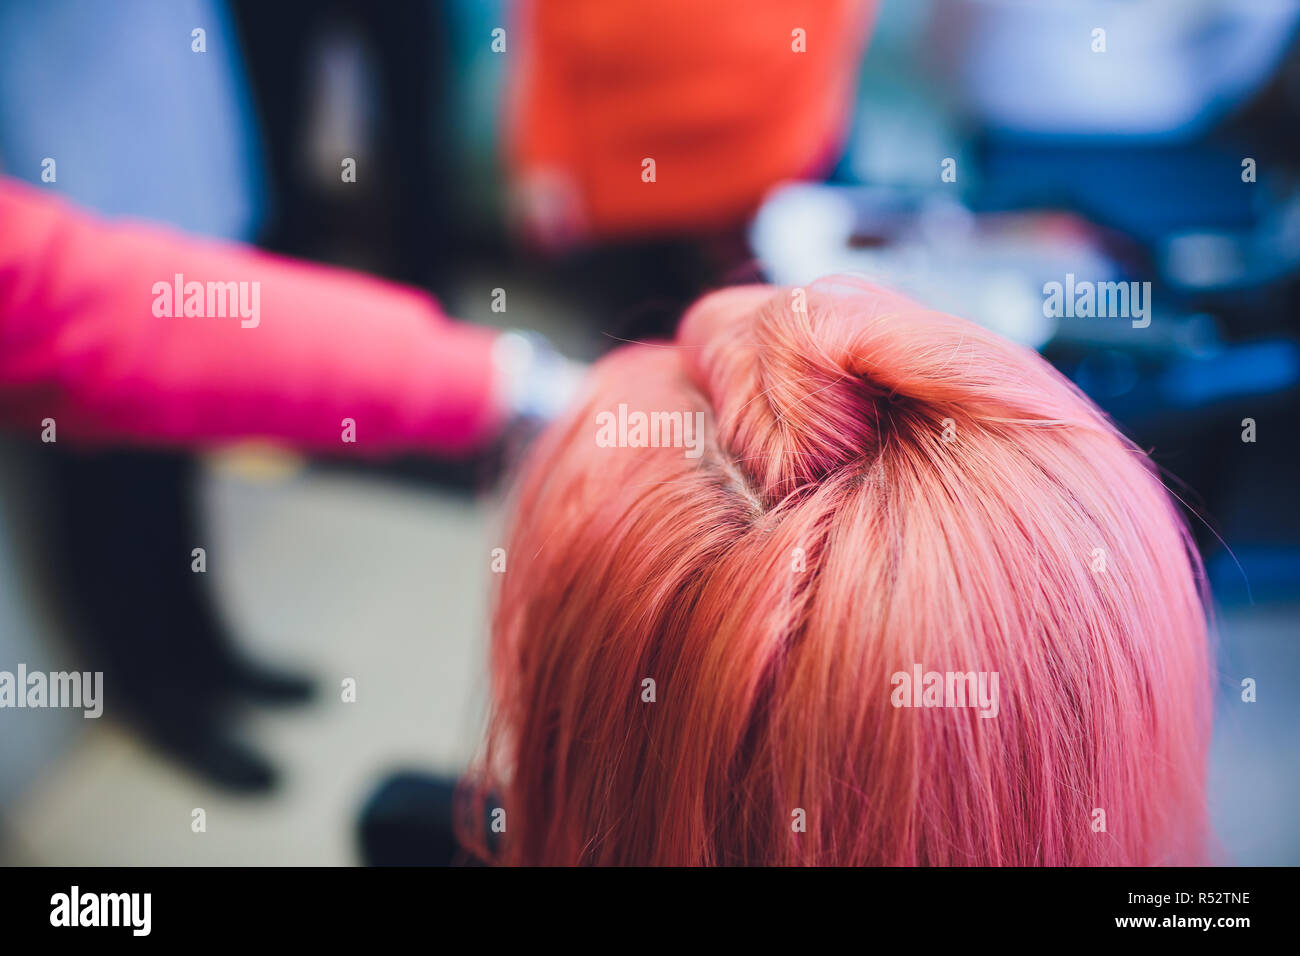 Painting red of hair in a beauty salon. - Stock Image